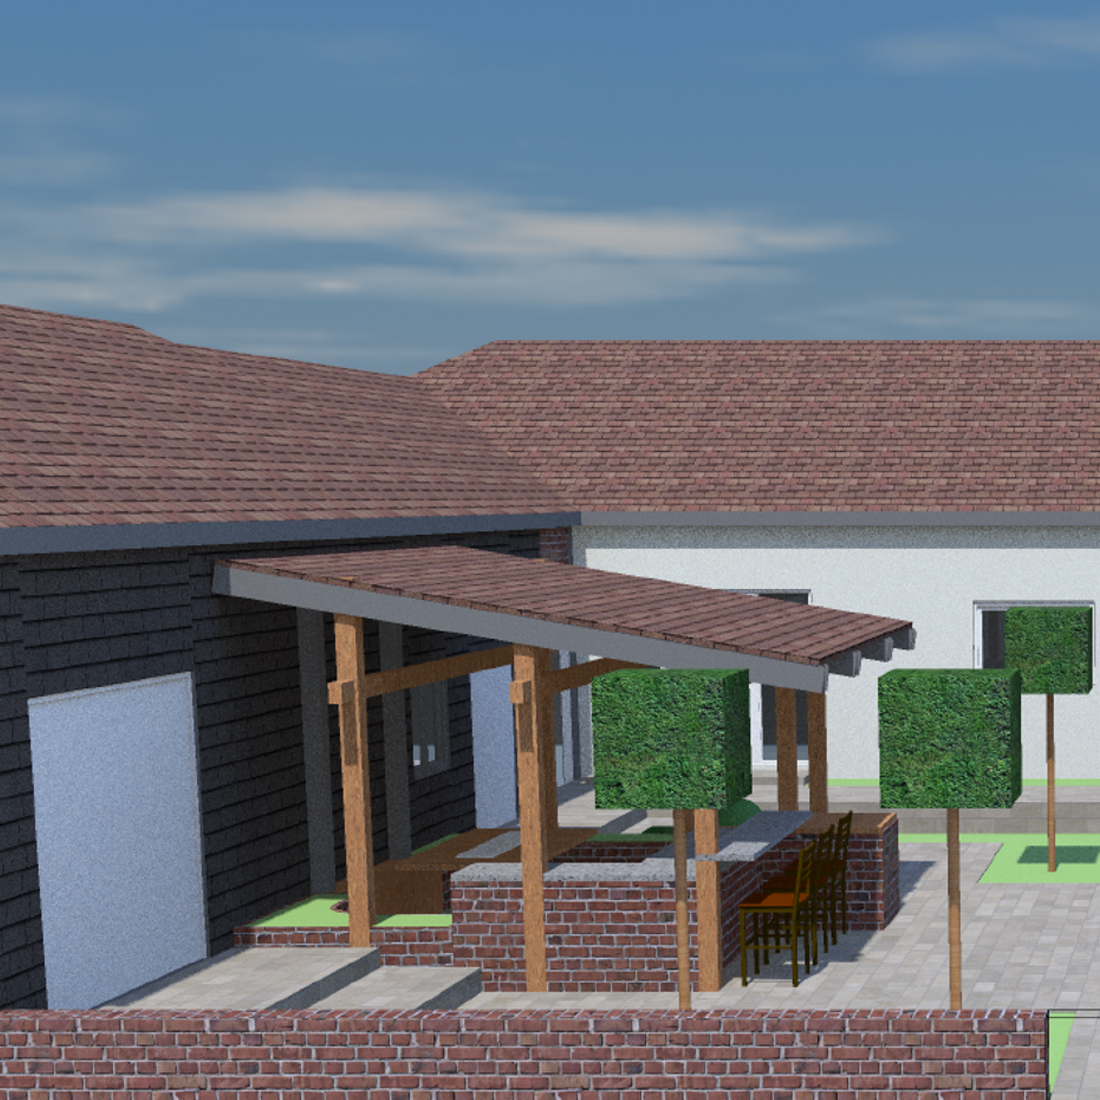 Bennell Farm Perspective Views Lounge and Courtyard Areas Rev 1